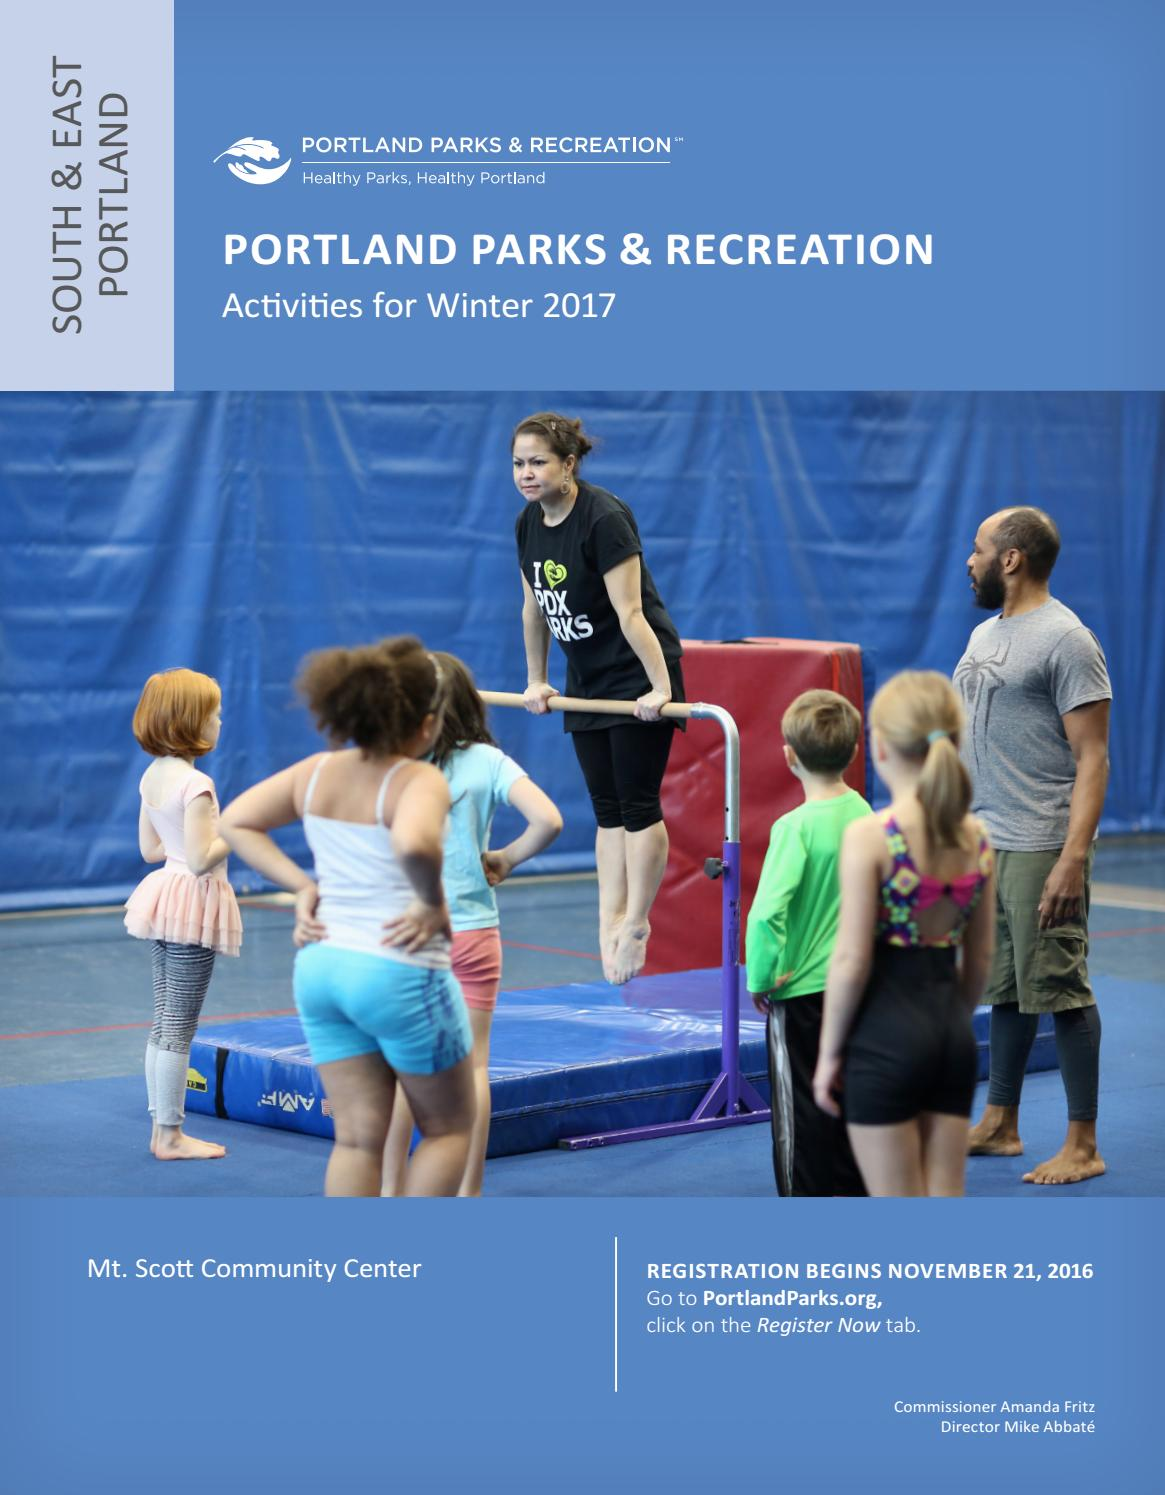 mt scott community center winter 2017 by portland parks